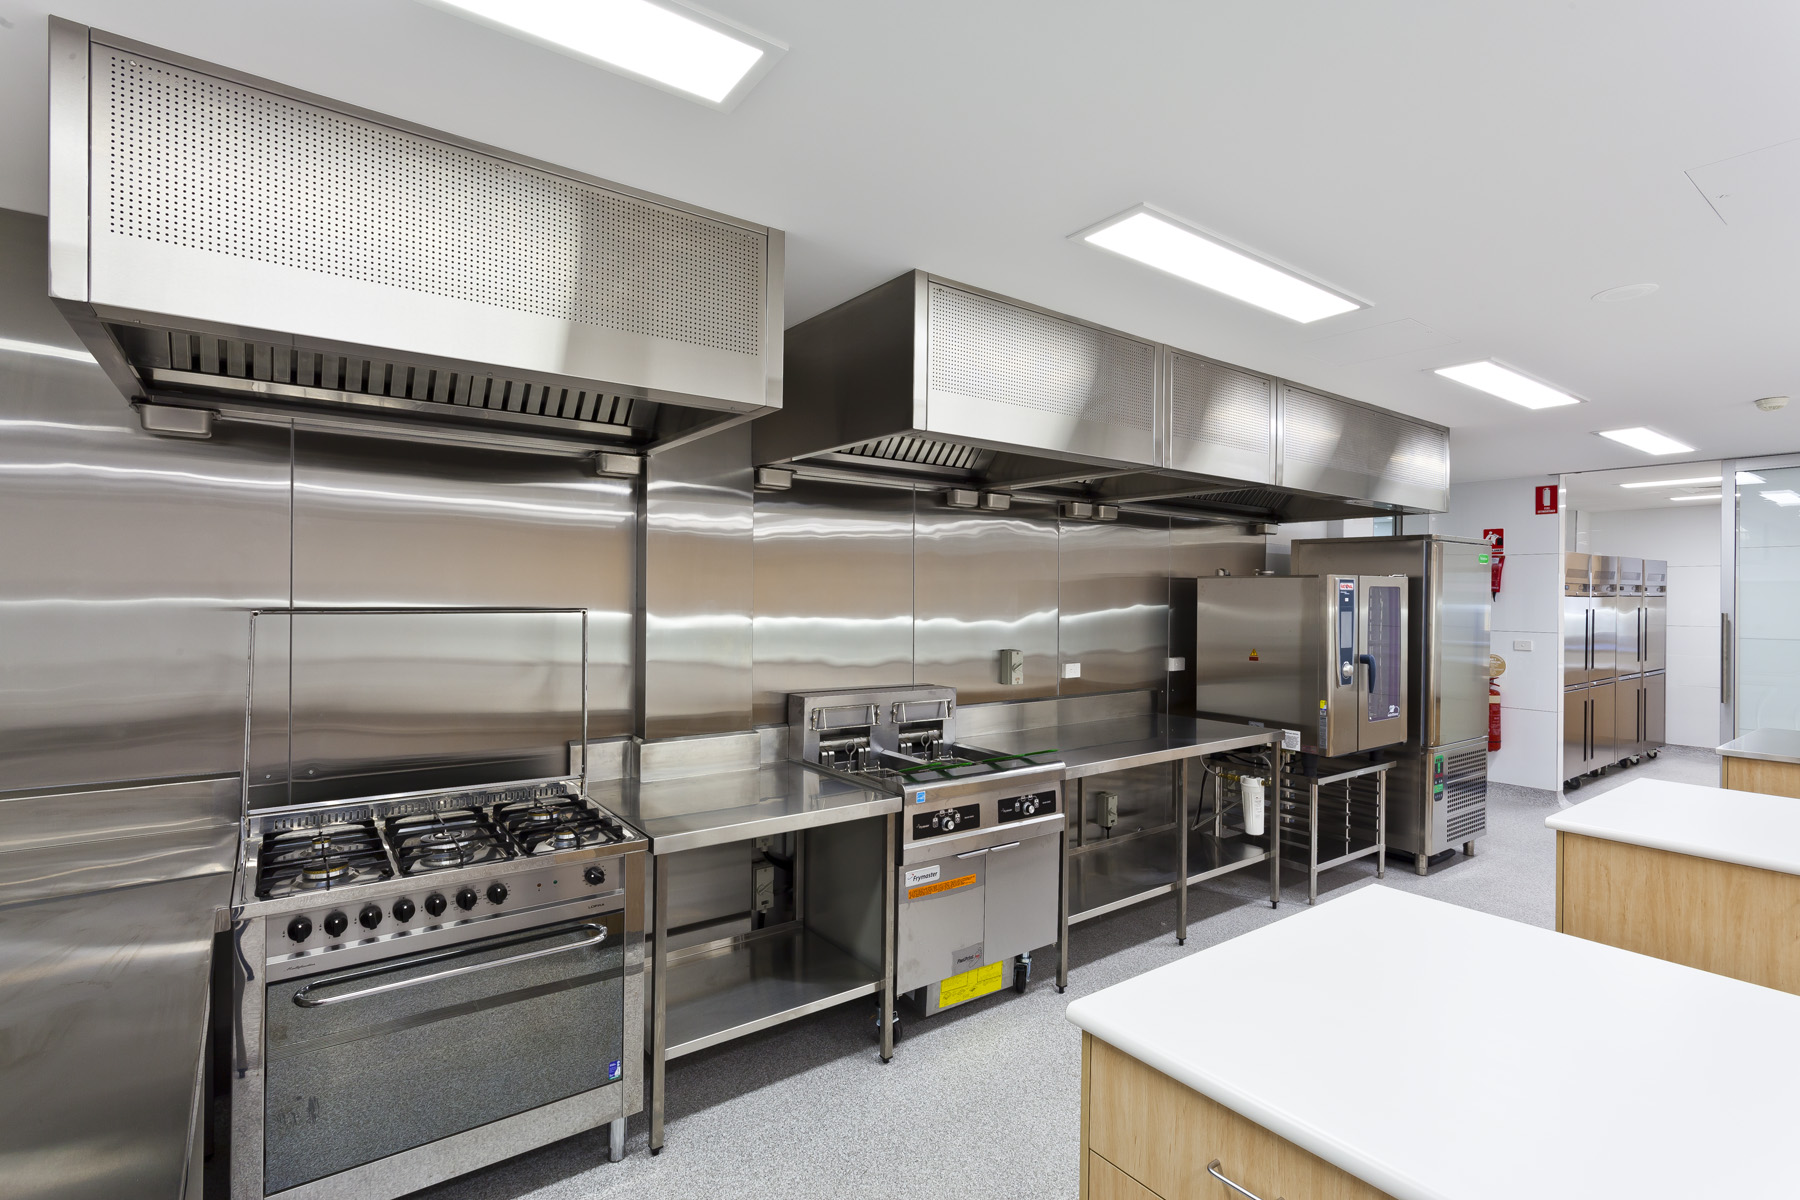 Why Should I Invest Cash On Commercial Kitchen Home Appliances?   Home  Appliances Online